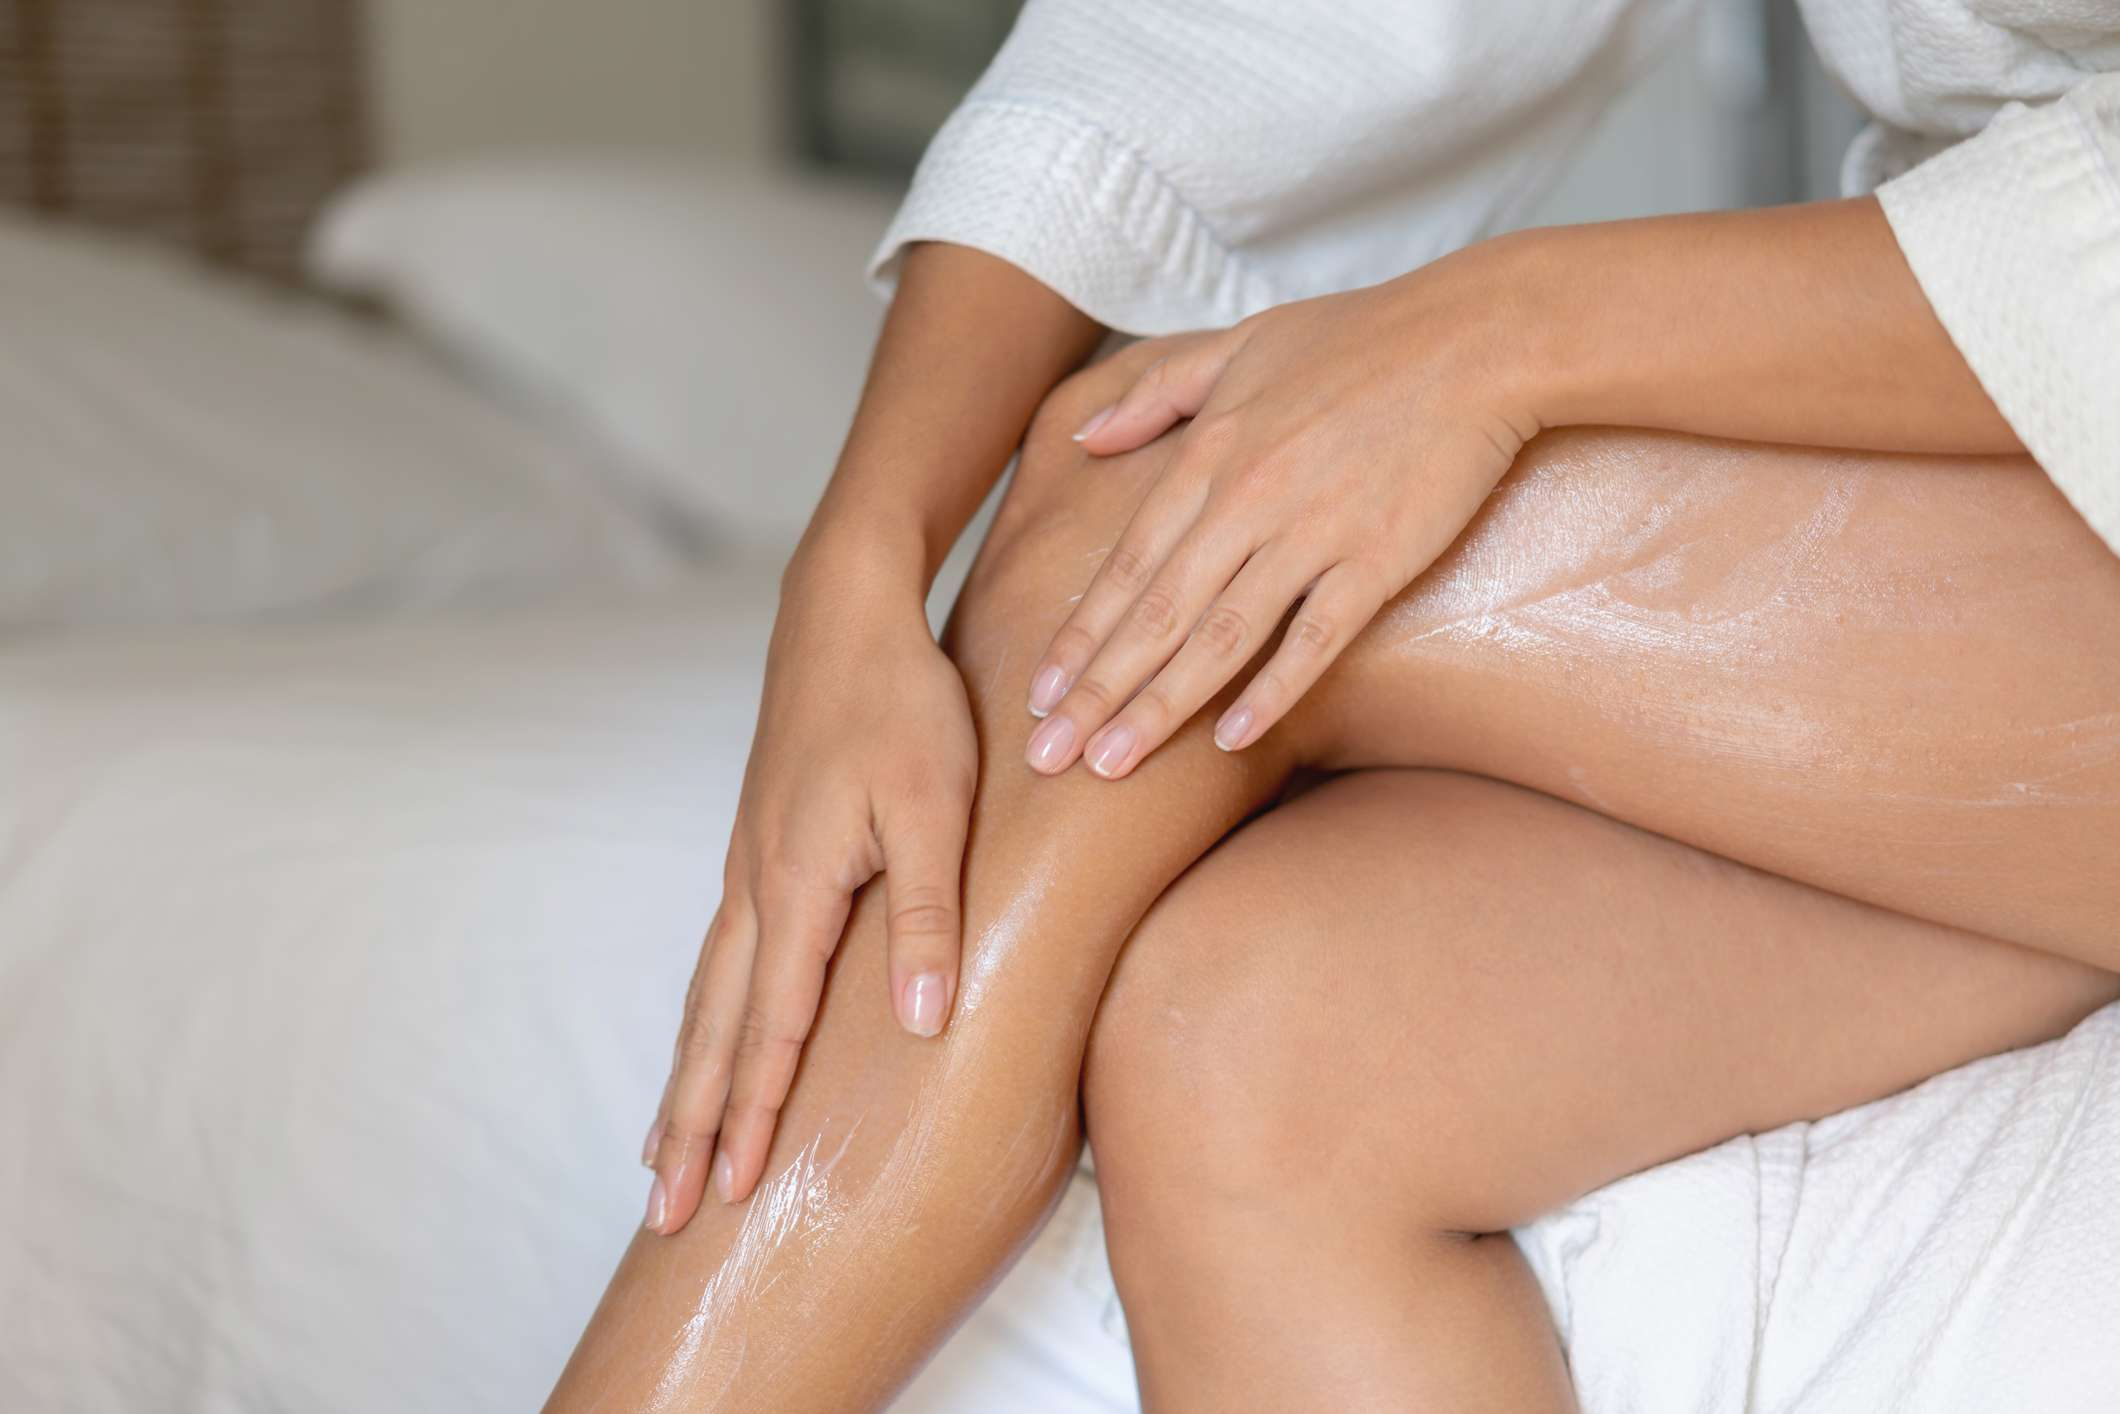 Woman applying lotion to her bare legs